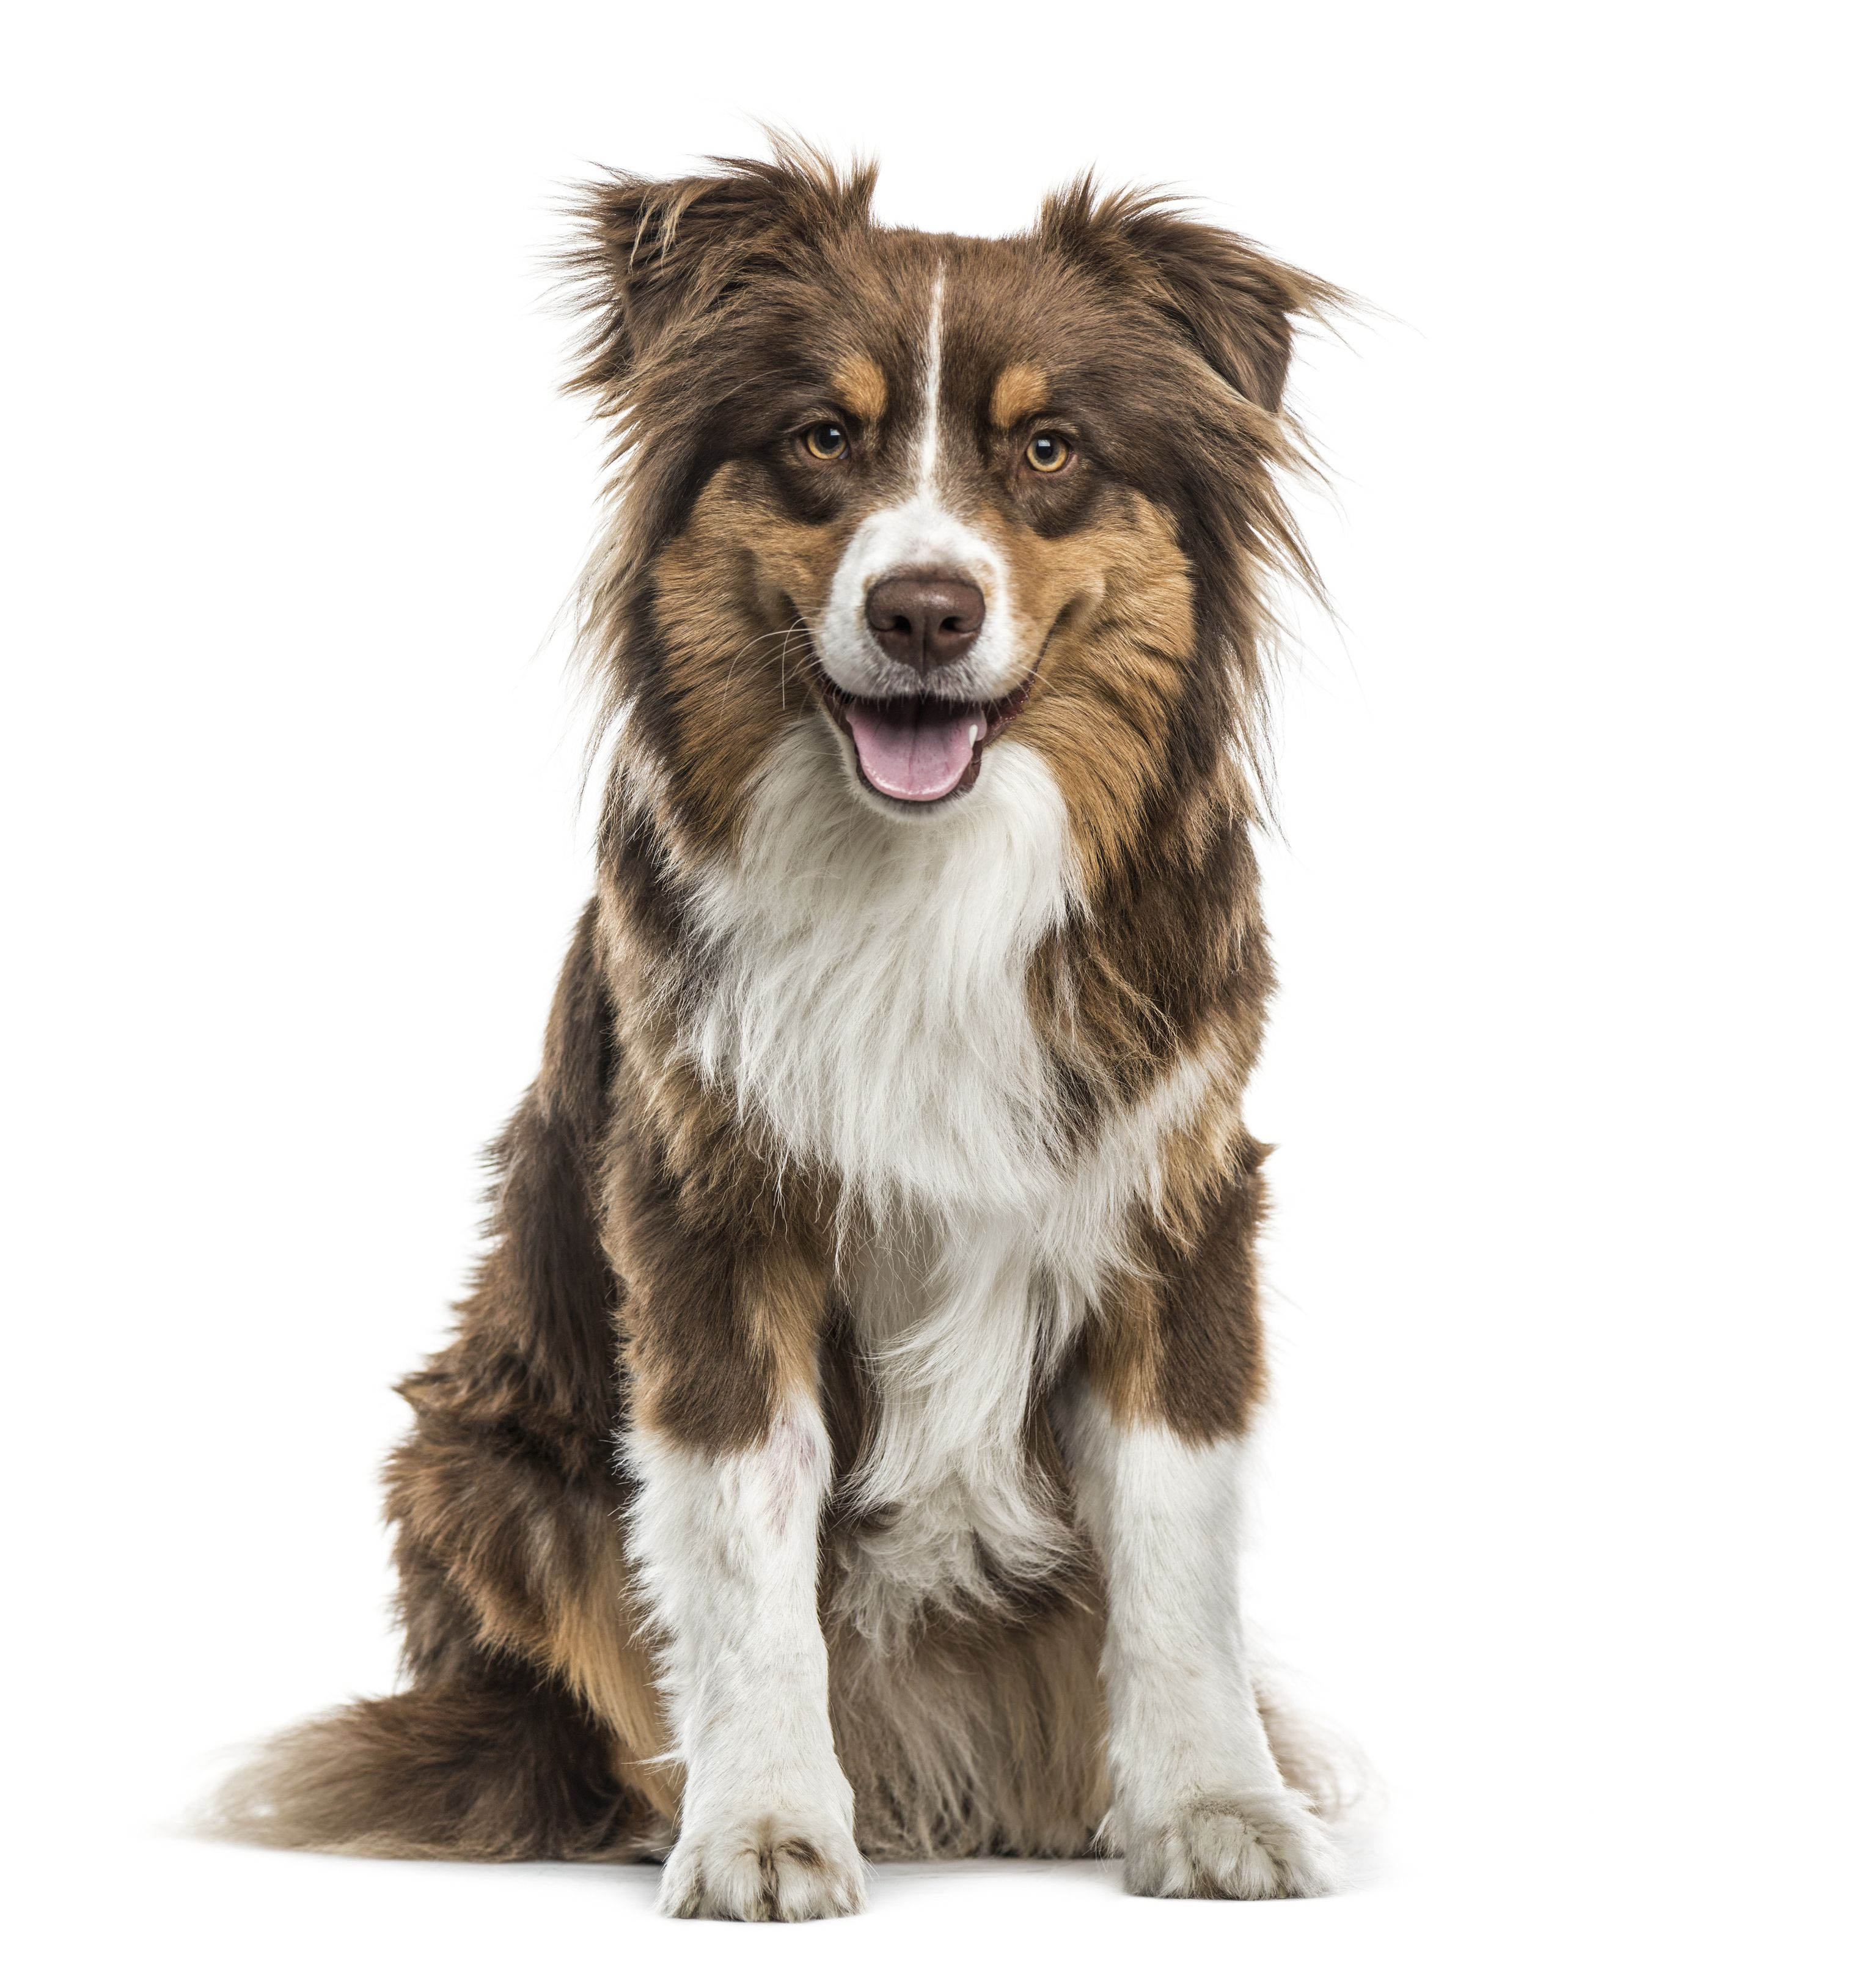 Doggos R Us Is The One Stop Online Store For All Pet Products And Accessories Dog Quizzes Dog Breed Quiz Dogs